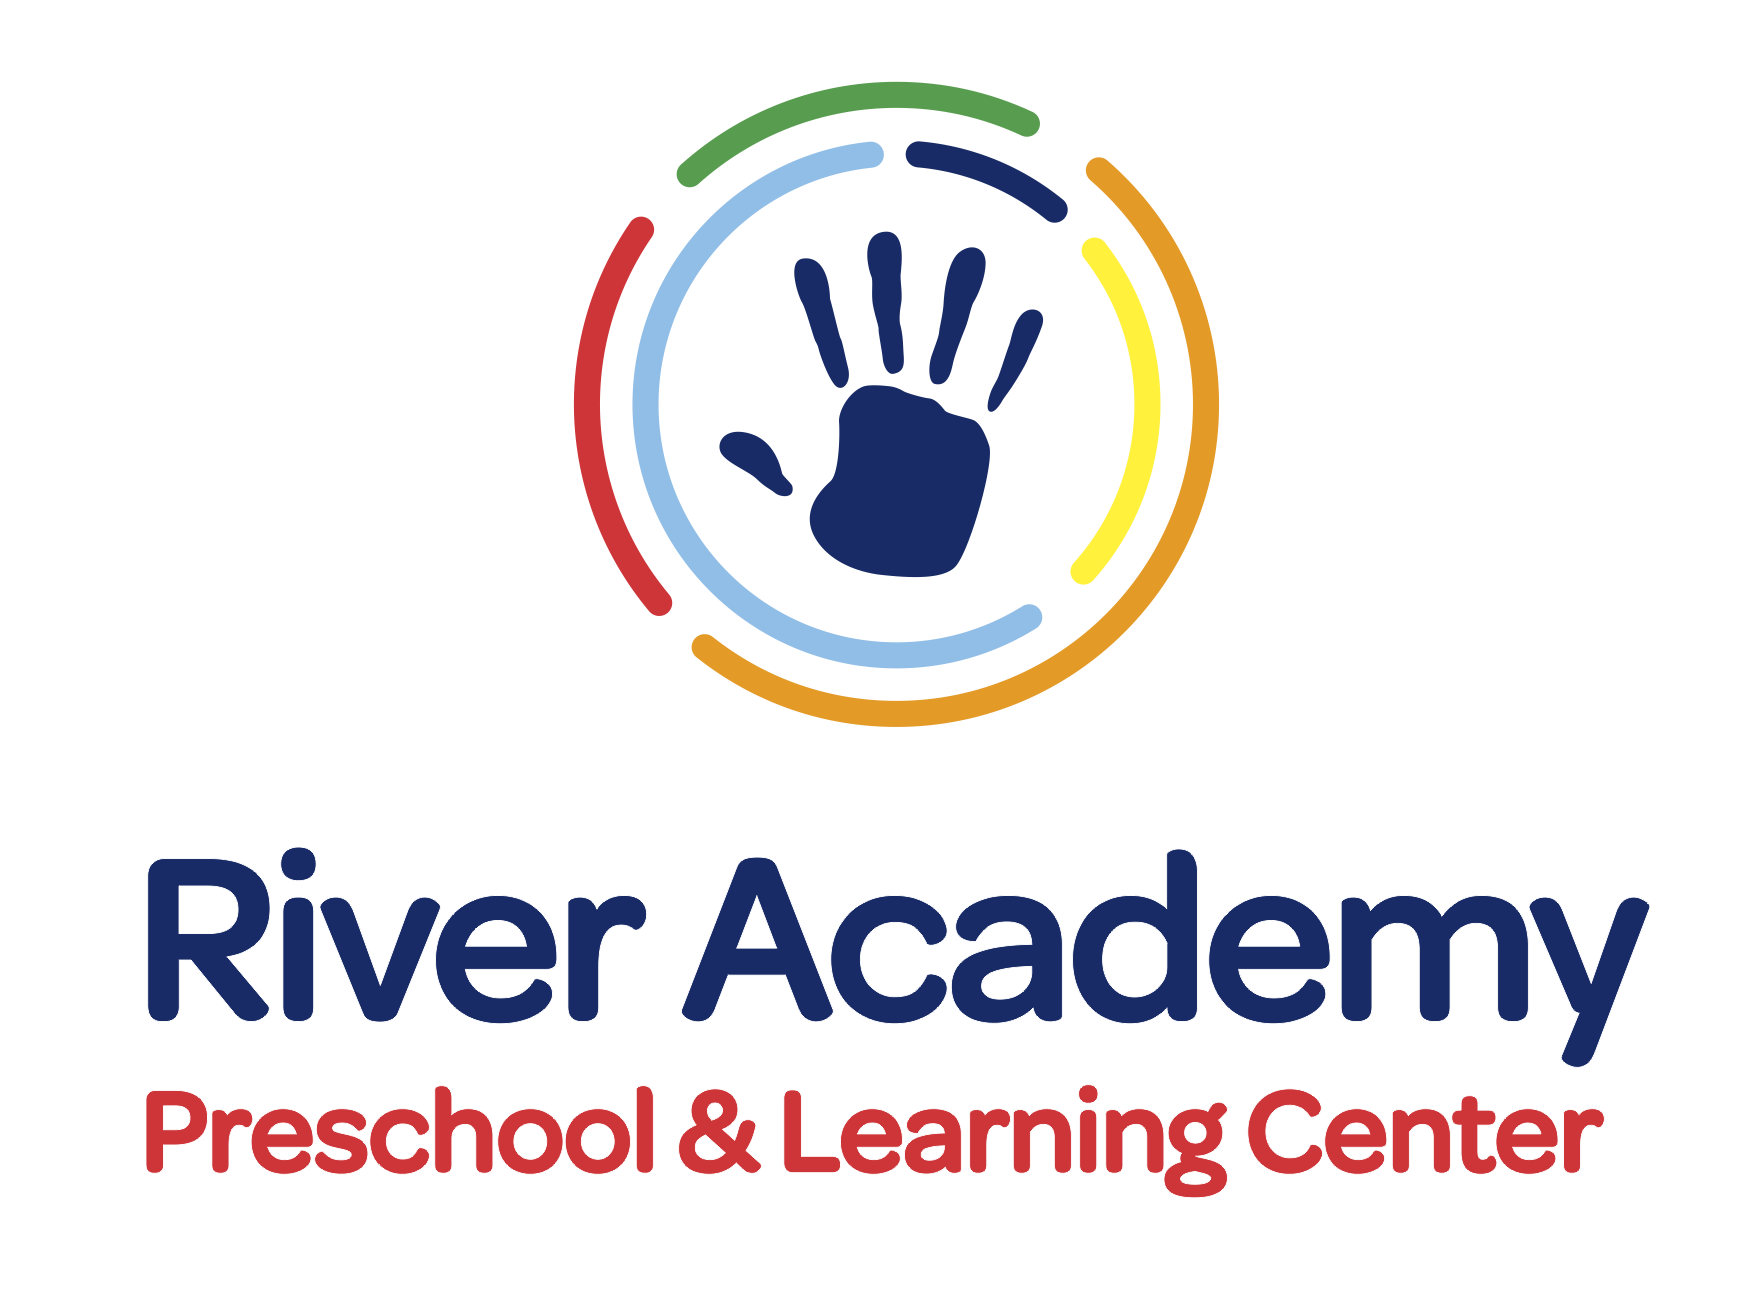 River Academy Preschool and Learning Center